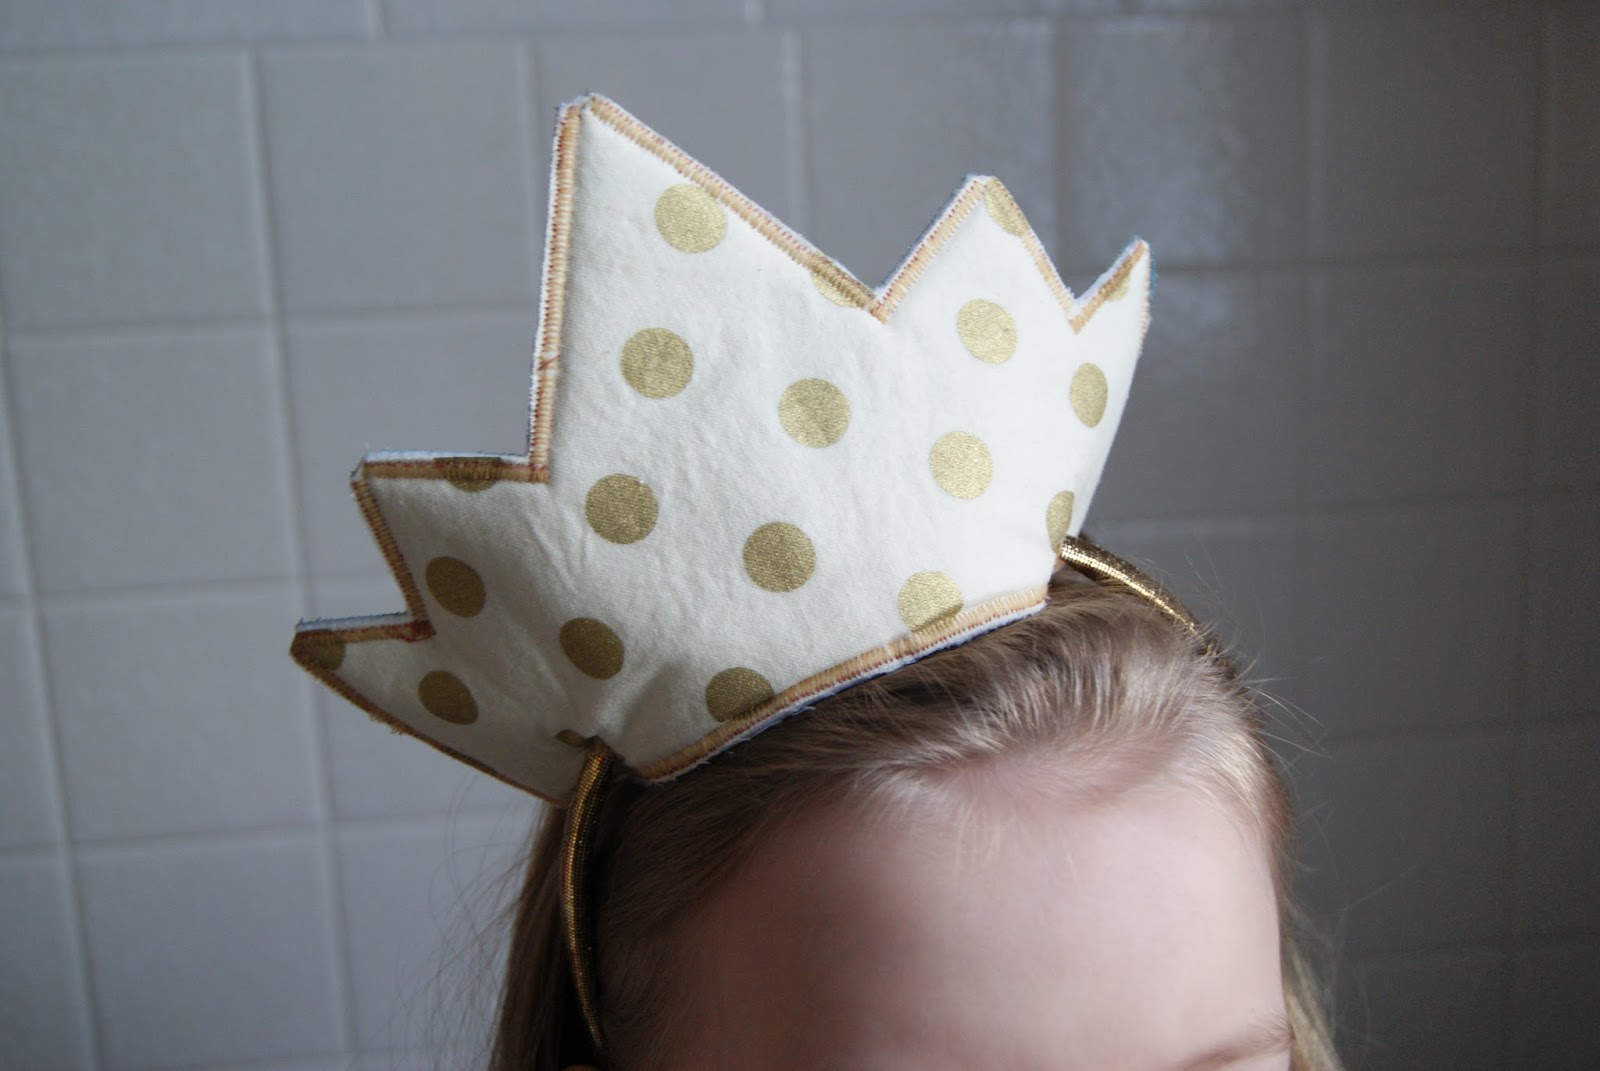 Gold Polka Dot Headband Crown by nest full of eggs